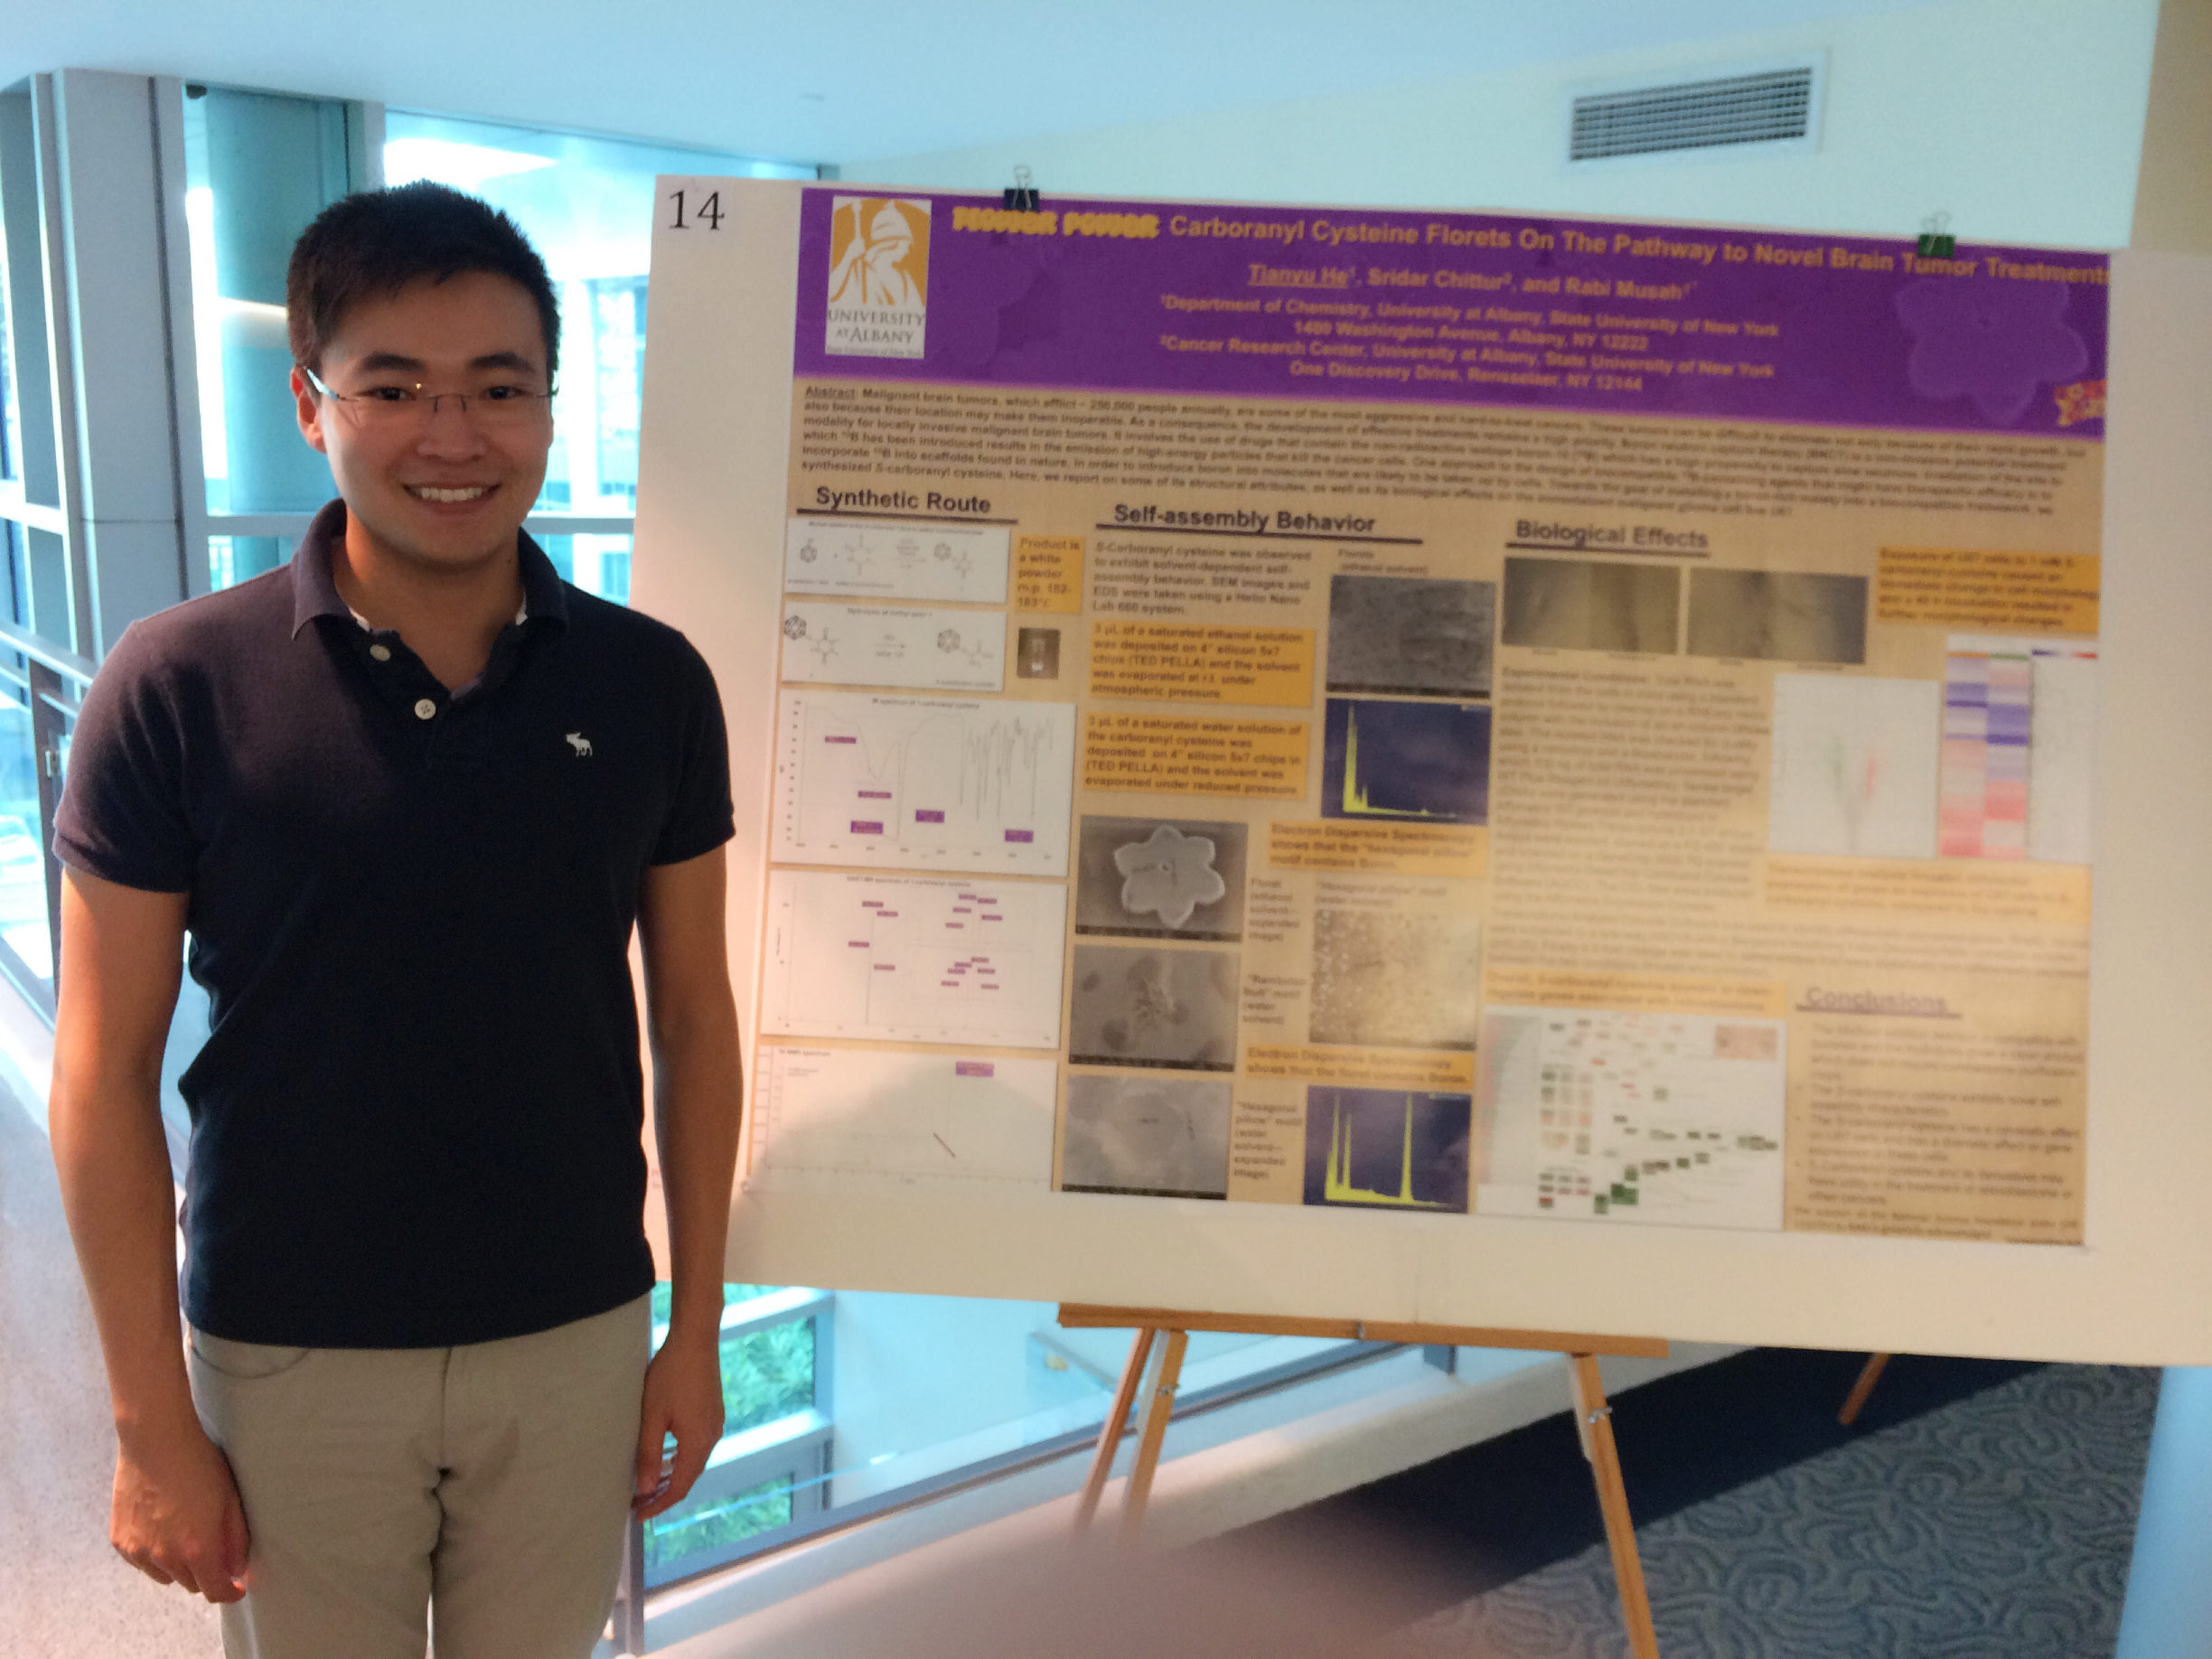 Tianyu He at LSRS 2015